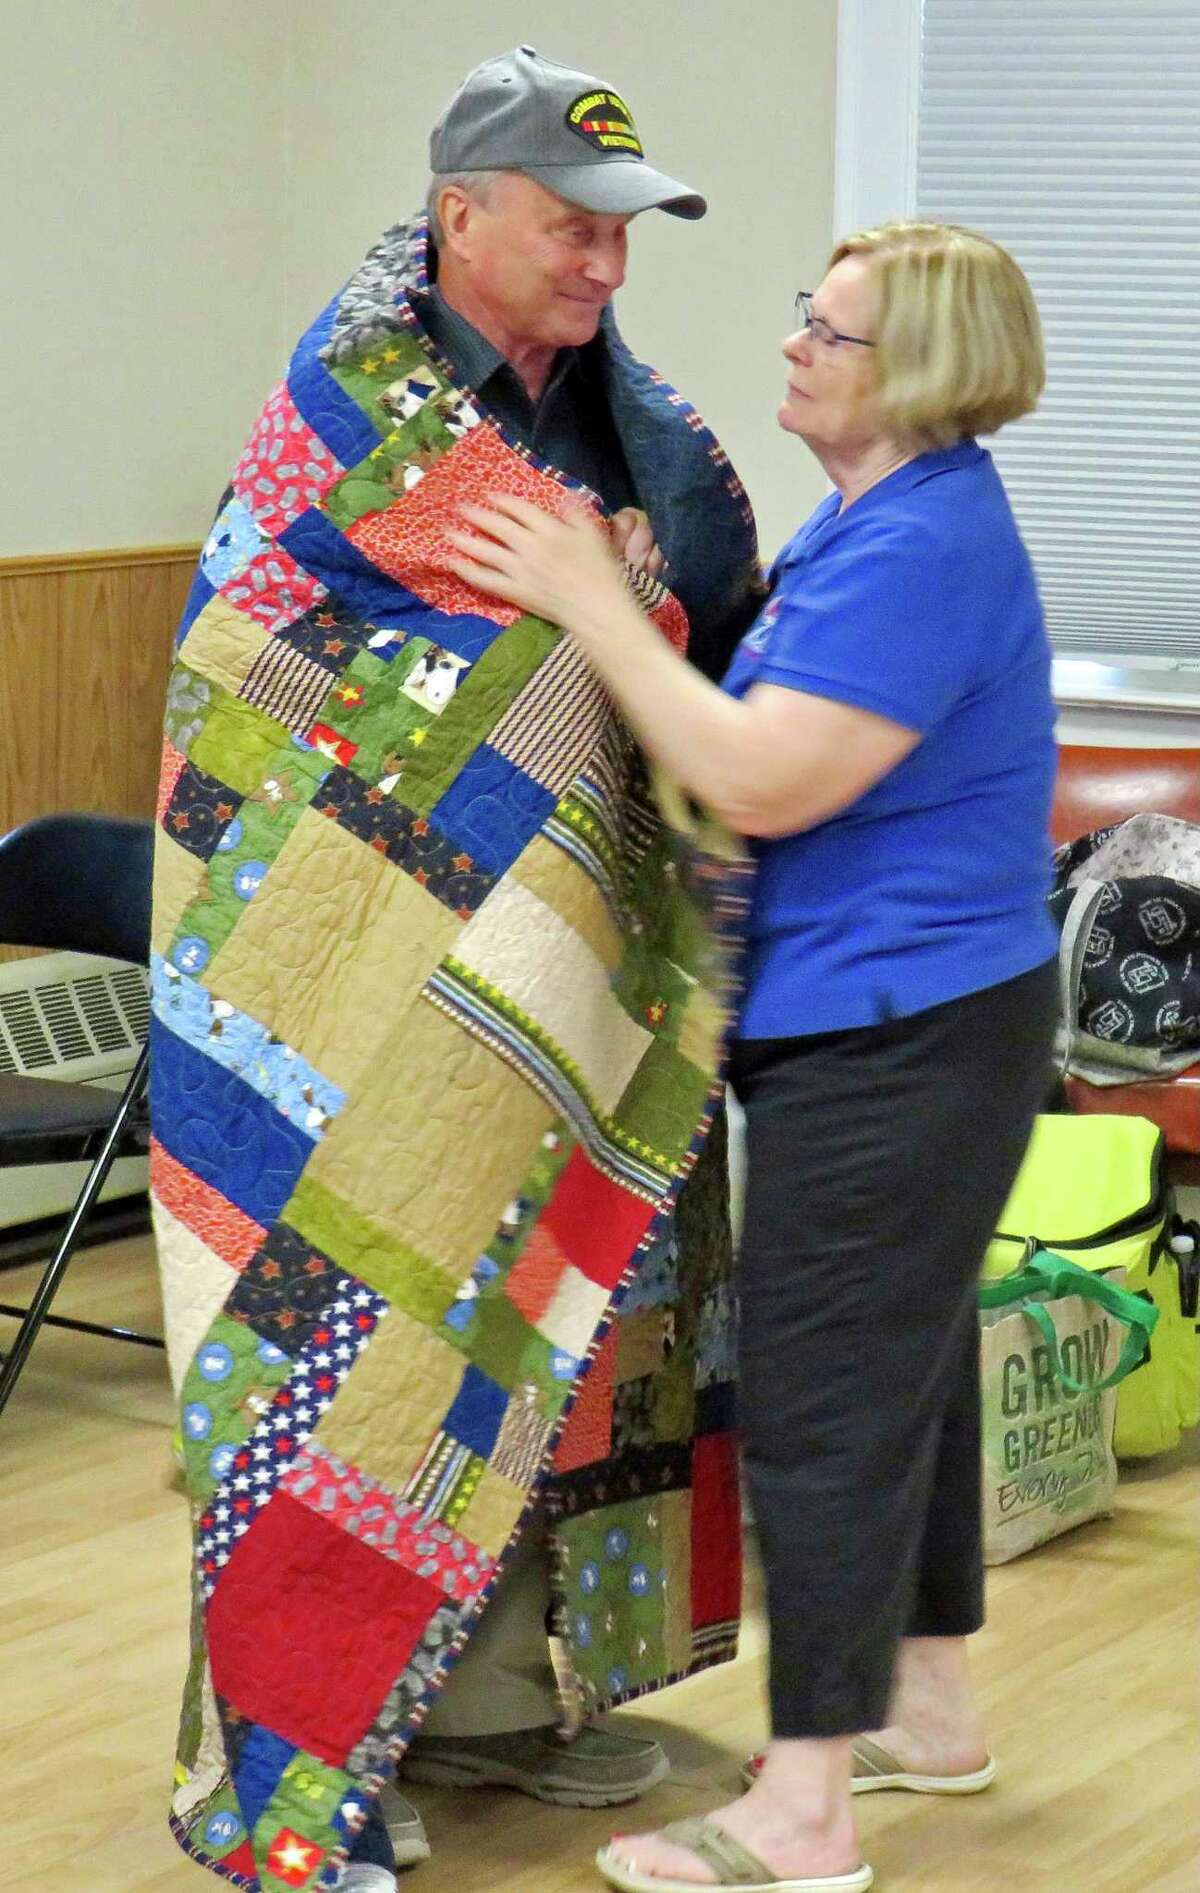 Vietnam Army veteran Robert Shirley accepting quilt from Nancy Burns from the Quilts of Valor Foundation.